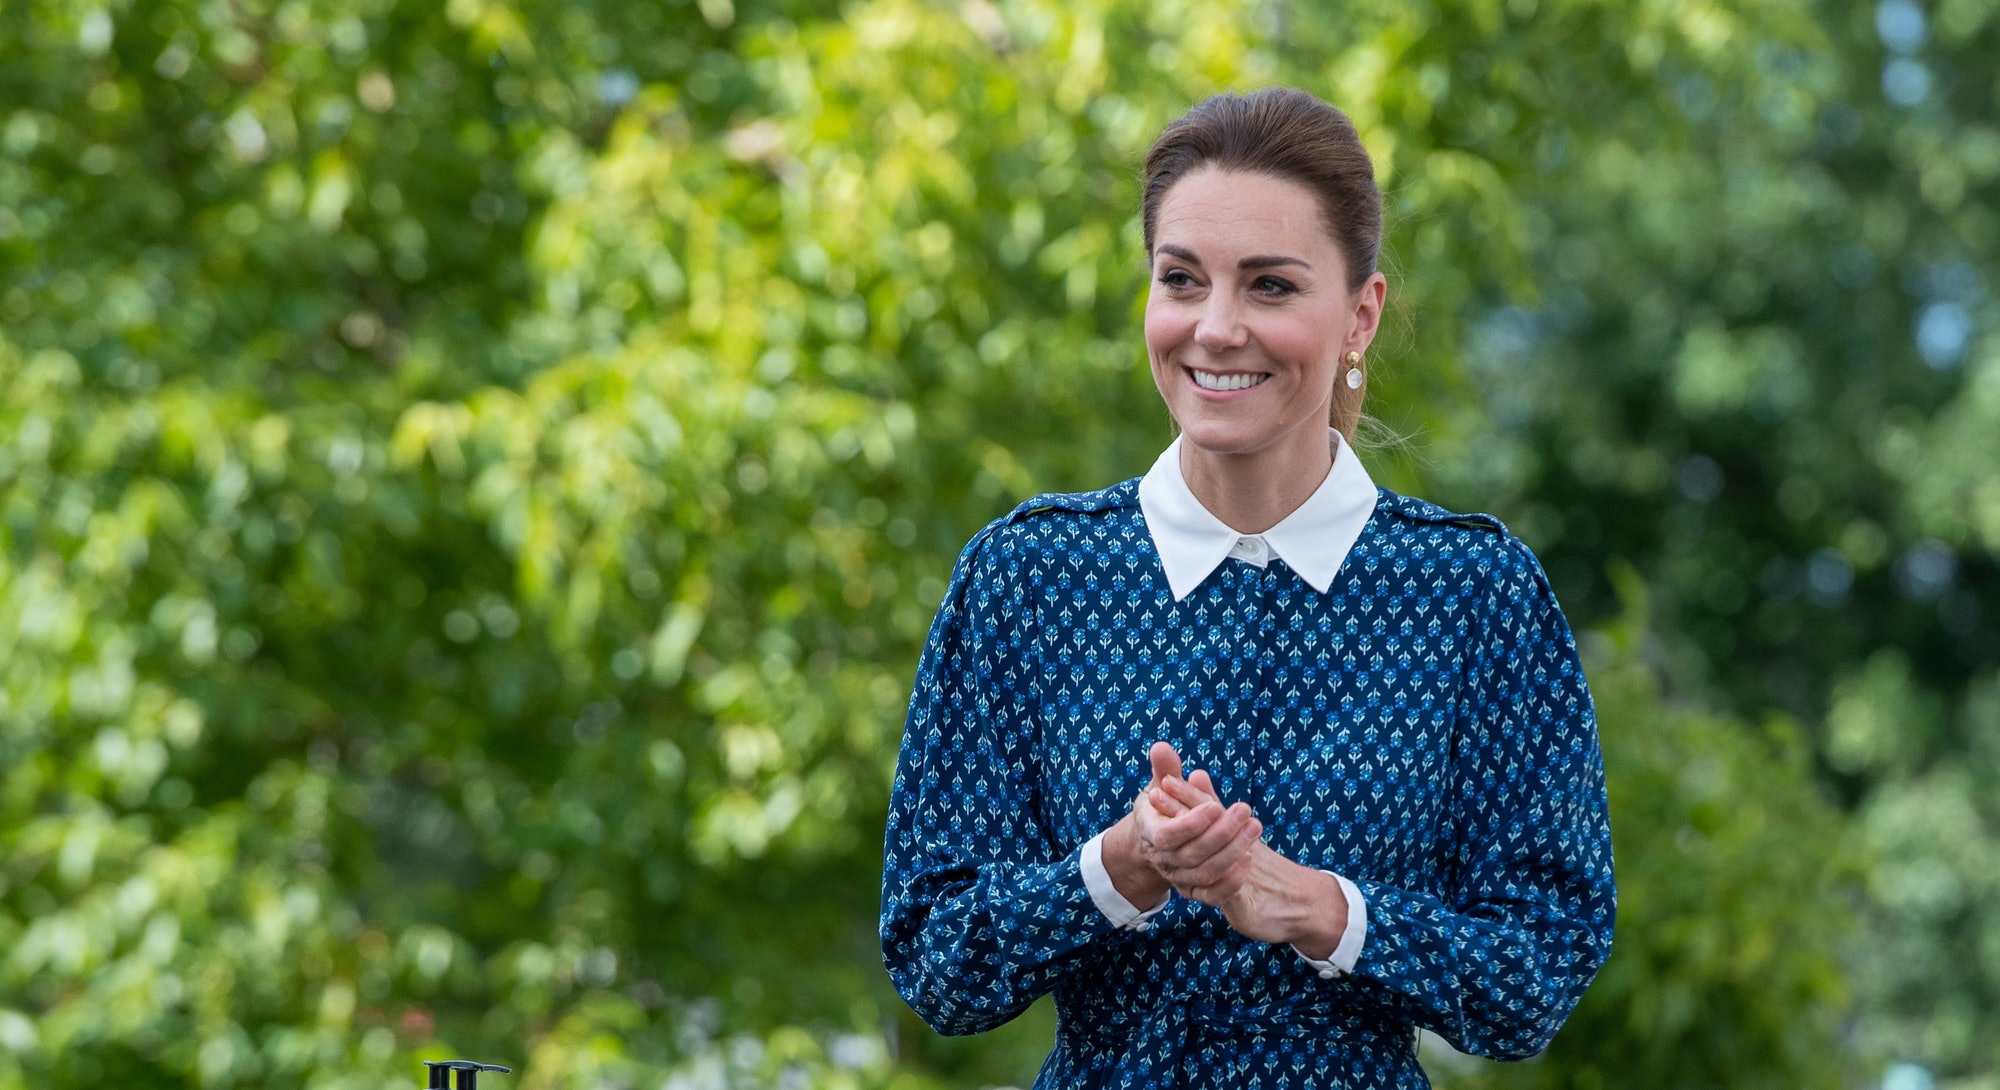 Kate Middleton posing at an event